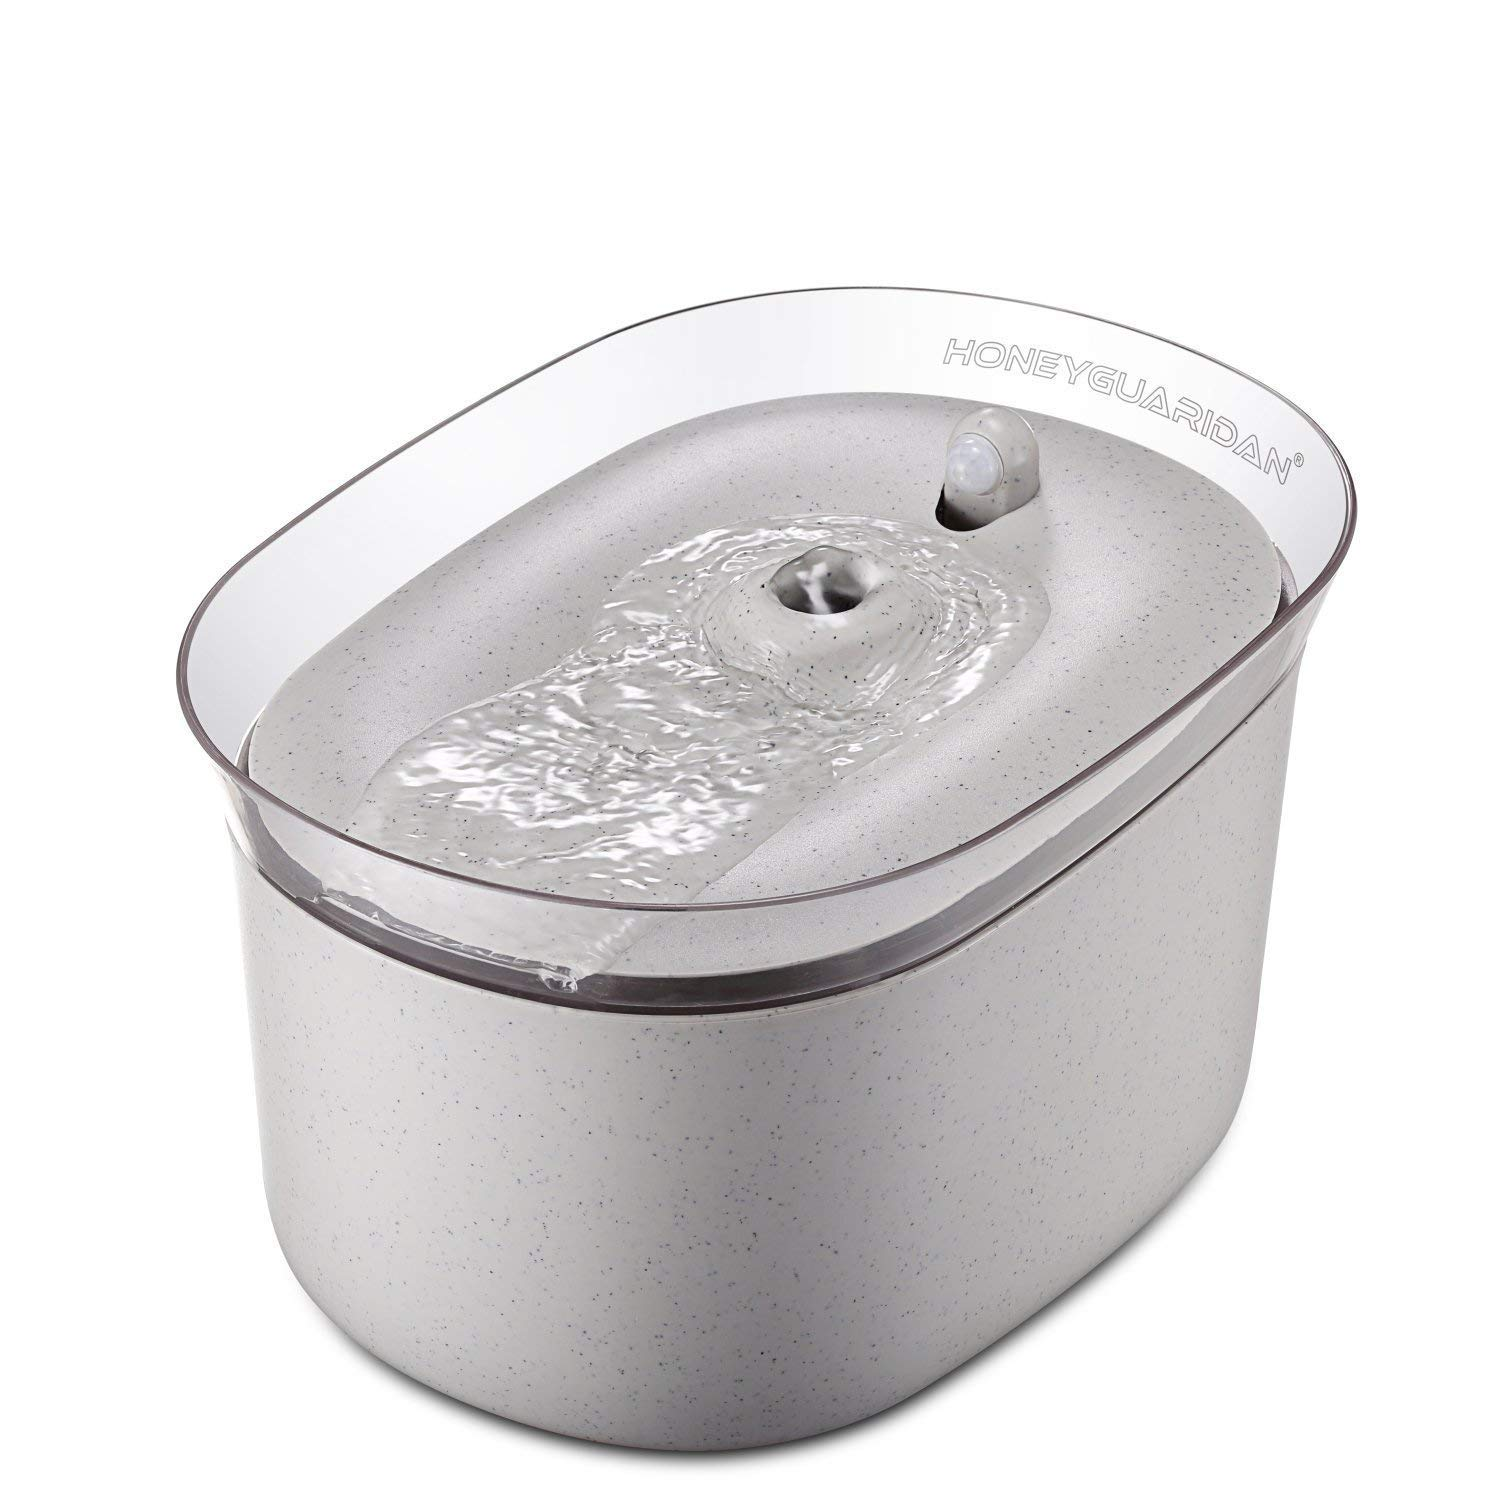 HoneyGuaridan Pet Drinking Water Fountain, 2.5L Super Quiet Automatic Cat Water Bowl with 3 Replacement Filters for Dogs, Cats, Birds and Small Animals